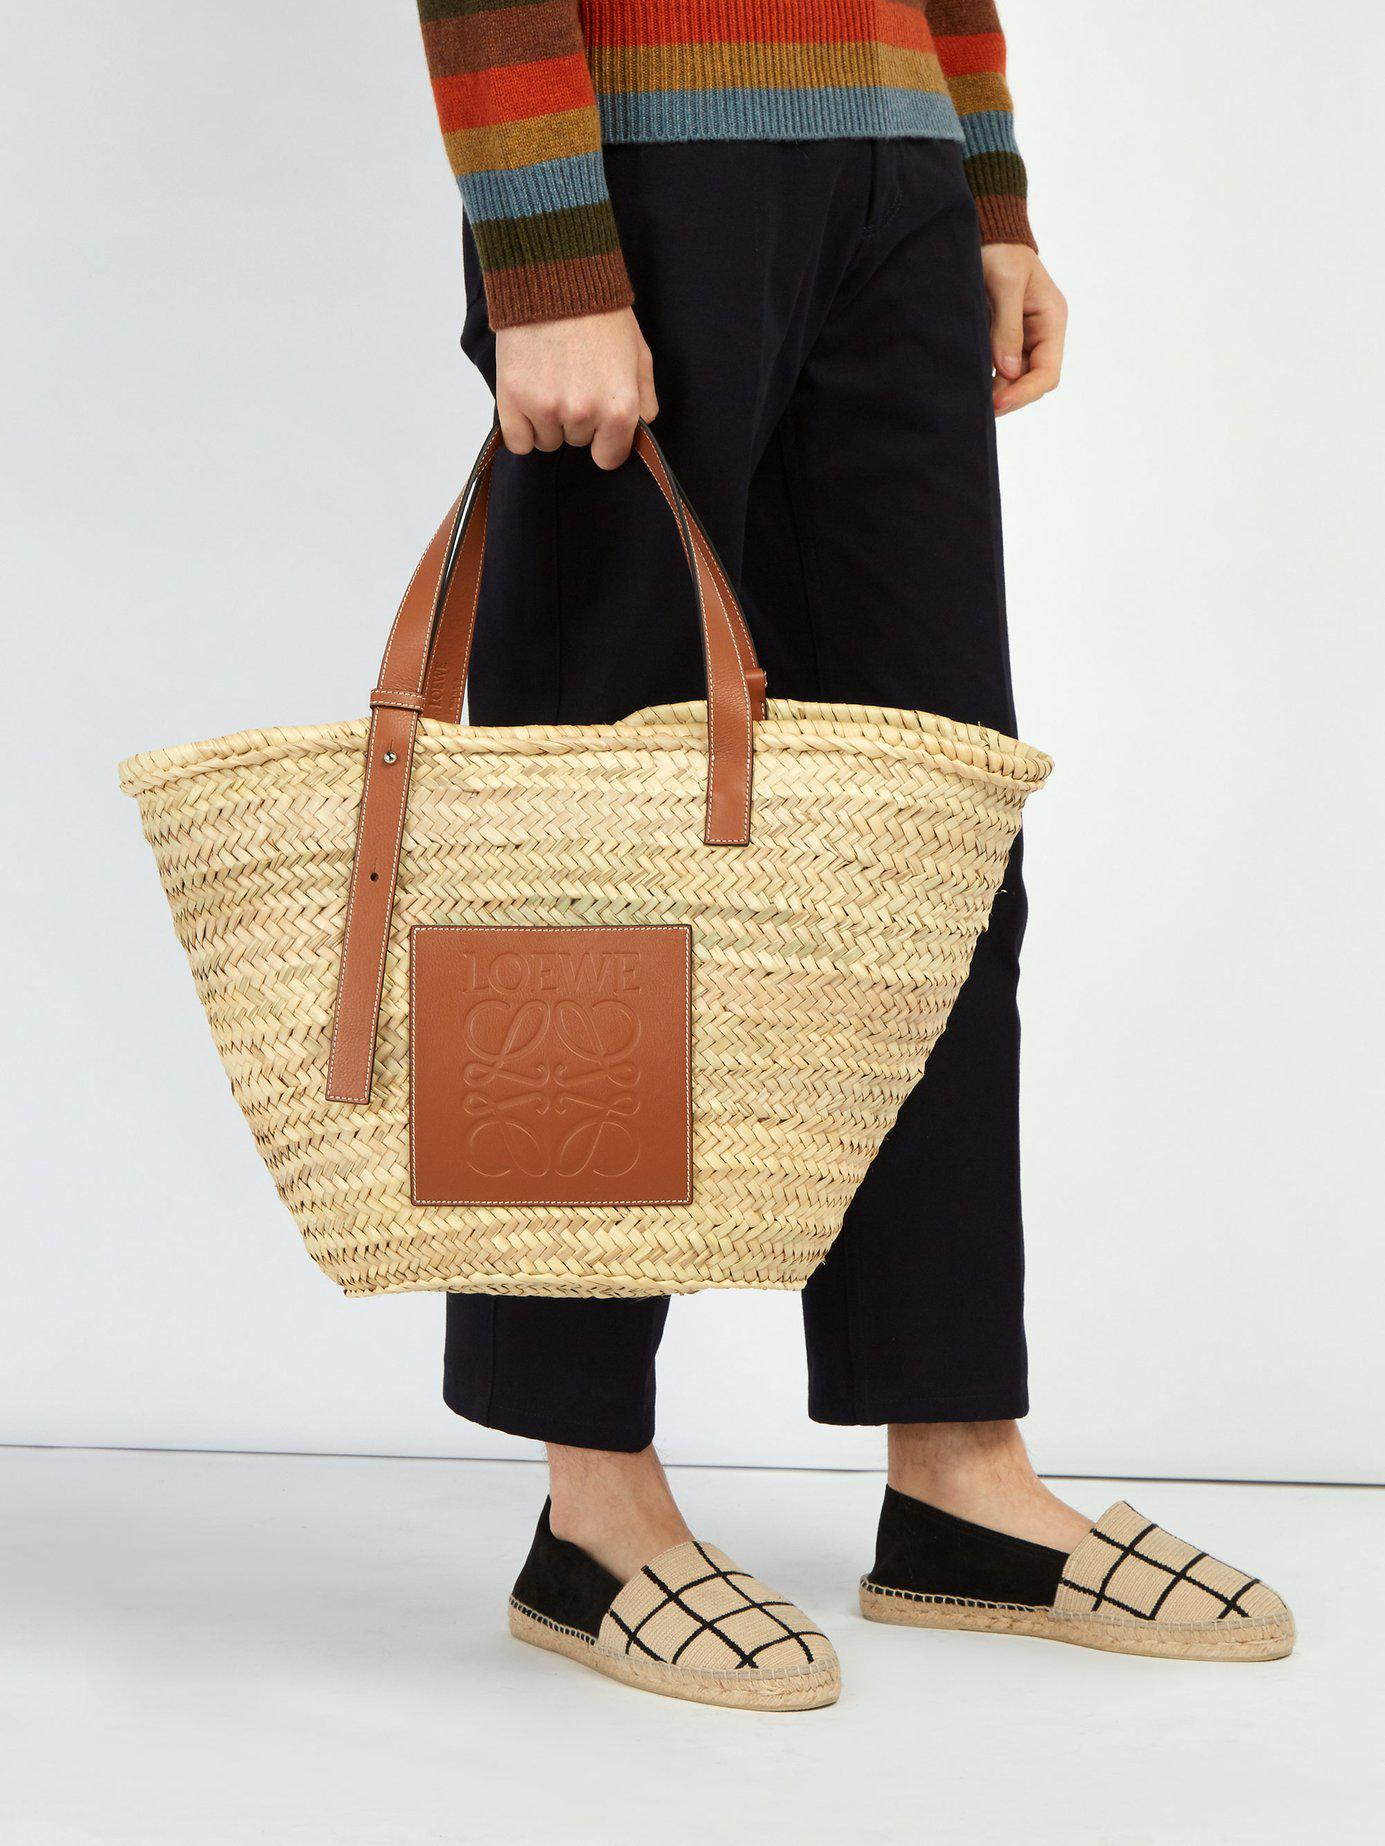 Loewe - Multicolor Leather Trimmed Woven Basket Bag for Men - Lyst. View  fullscreen f4229ccacaaef